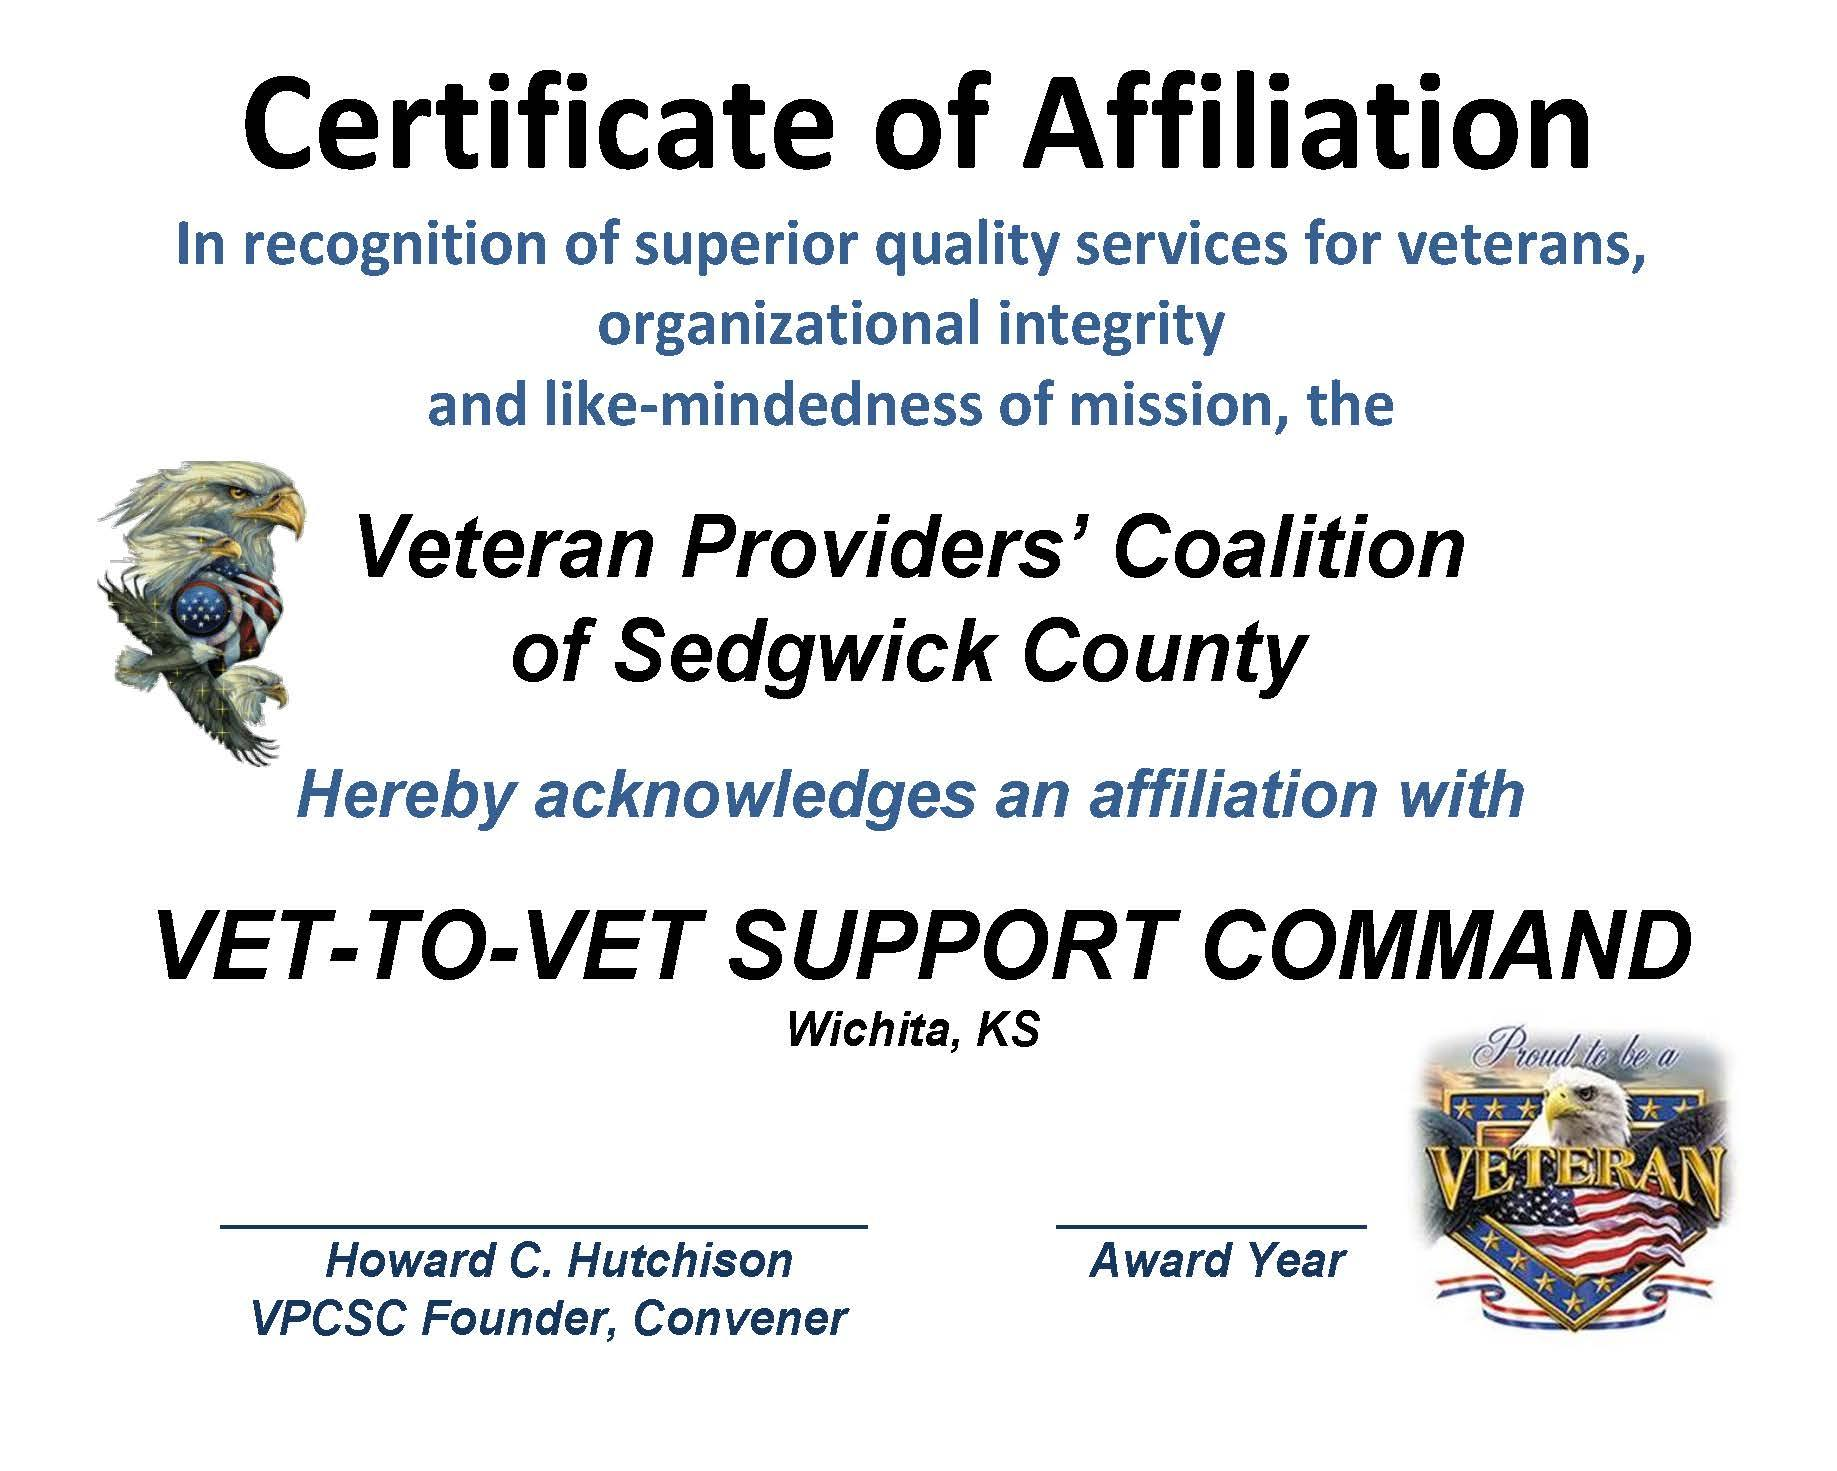 AFFILIATION - CERT. VET-T0-VET 2015